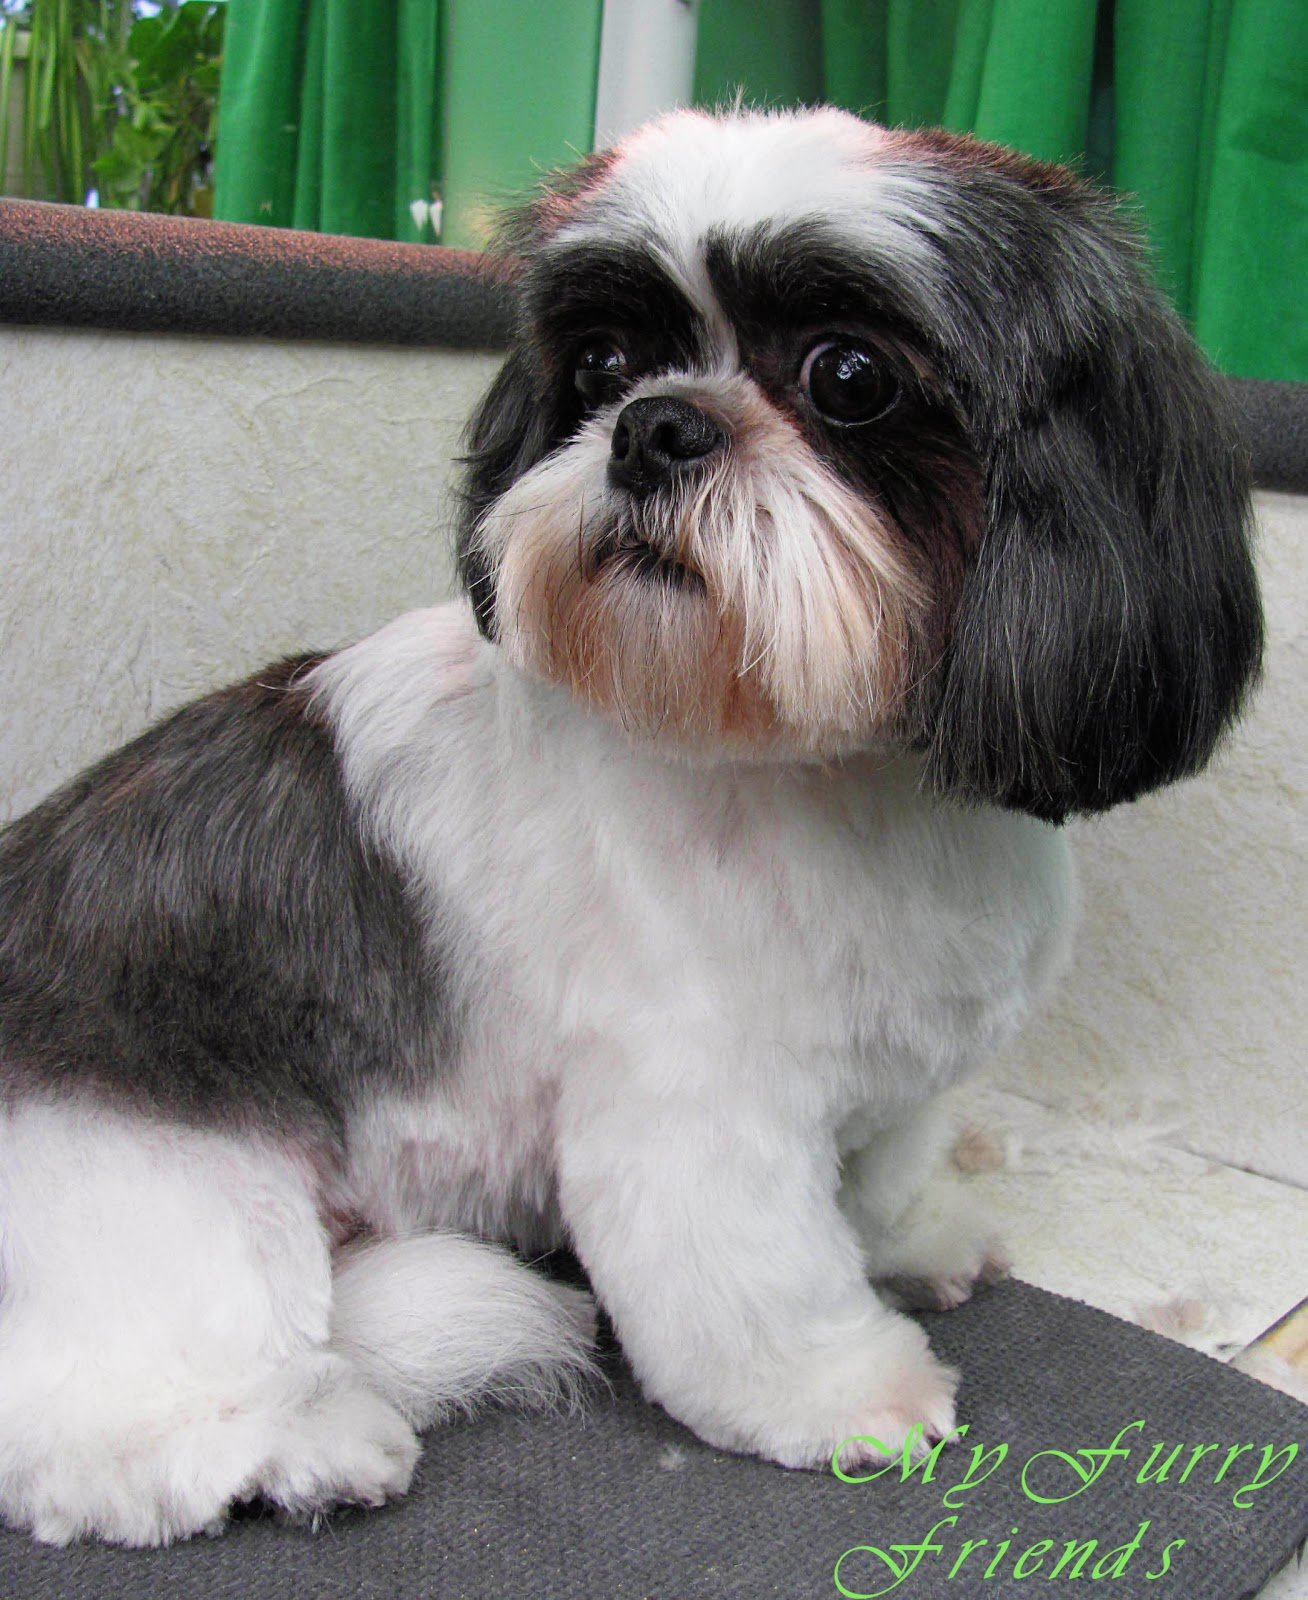 The Best Pet Grooming The Good The Bad The Furry Sc*Ss*R*Ng A Shih Tzu Head Pictures